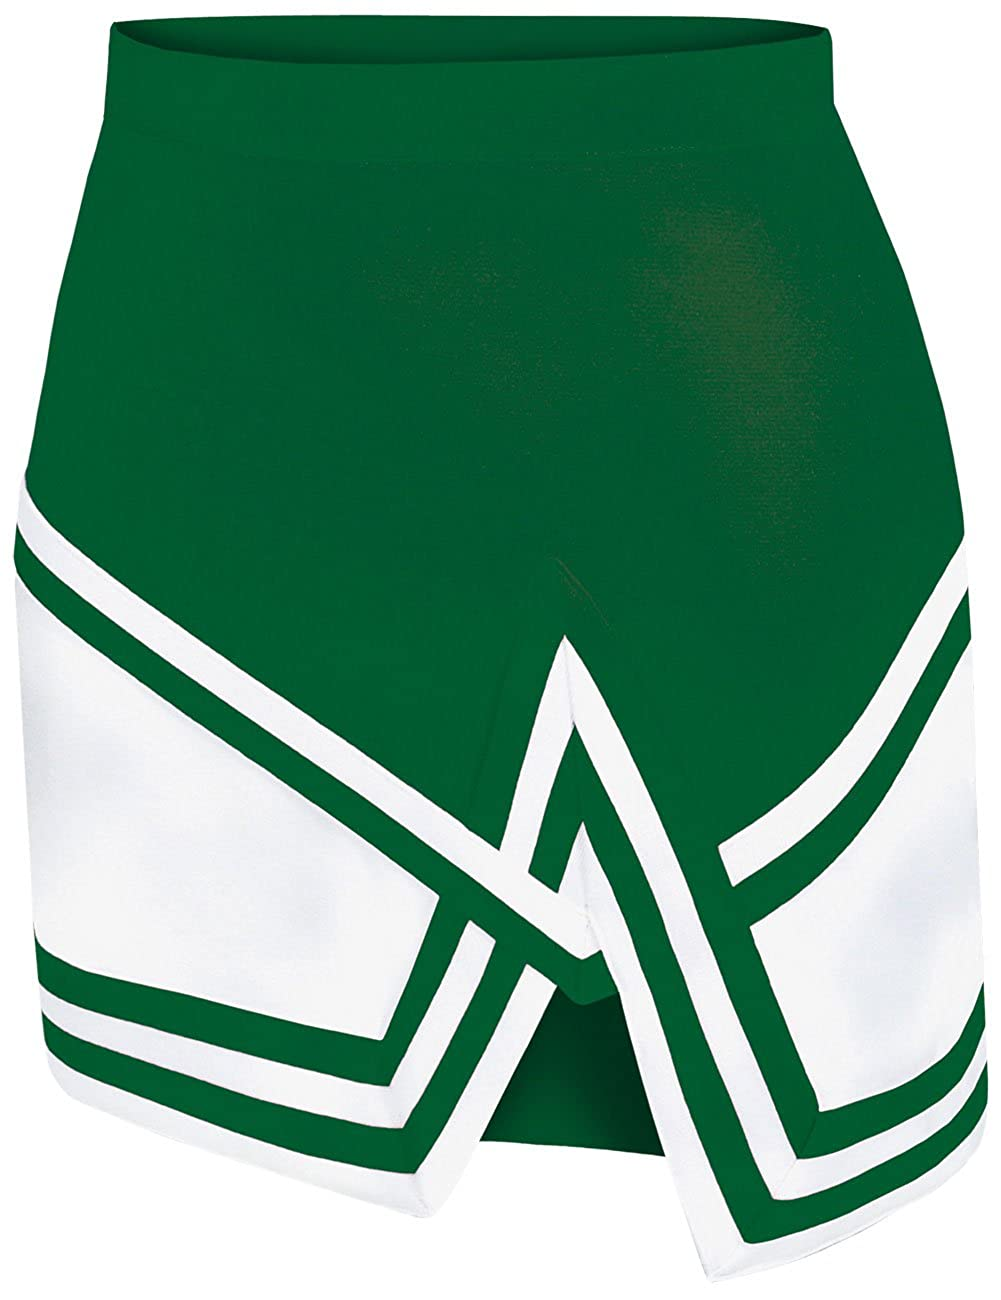 Crossover Cheer Uniform Skirt - Double Knit Adjustable Skirt For Cheerleaders - Women's Sizes Chassé 422KS